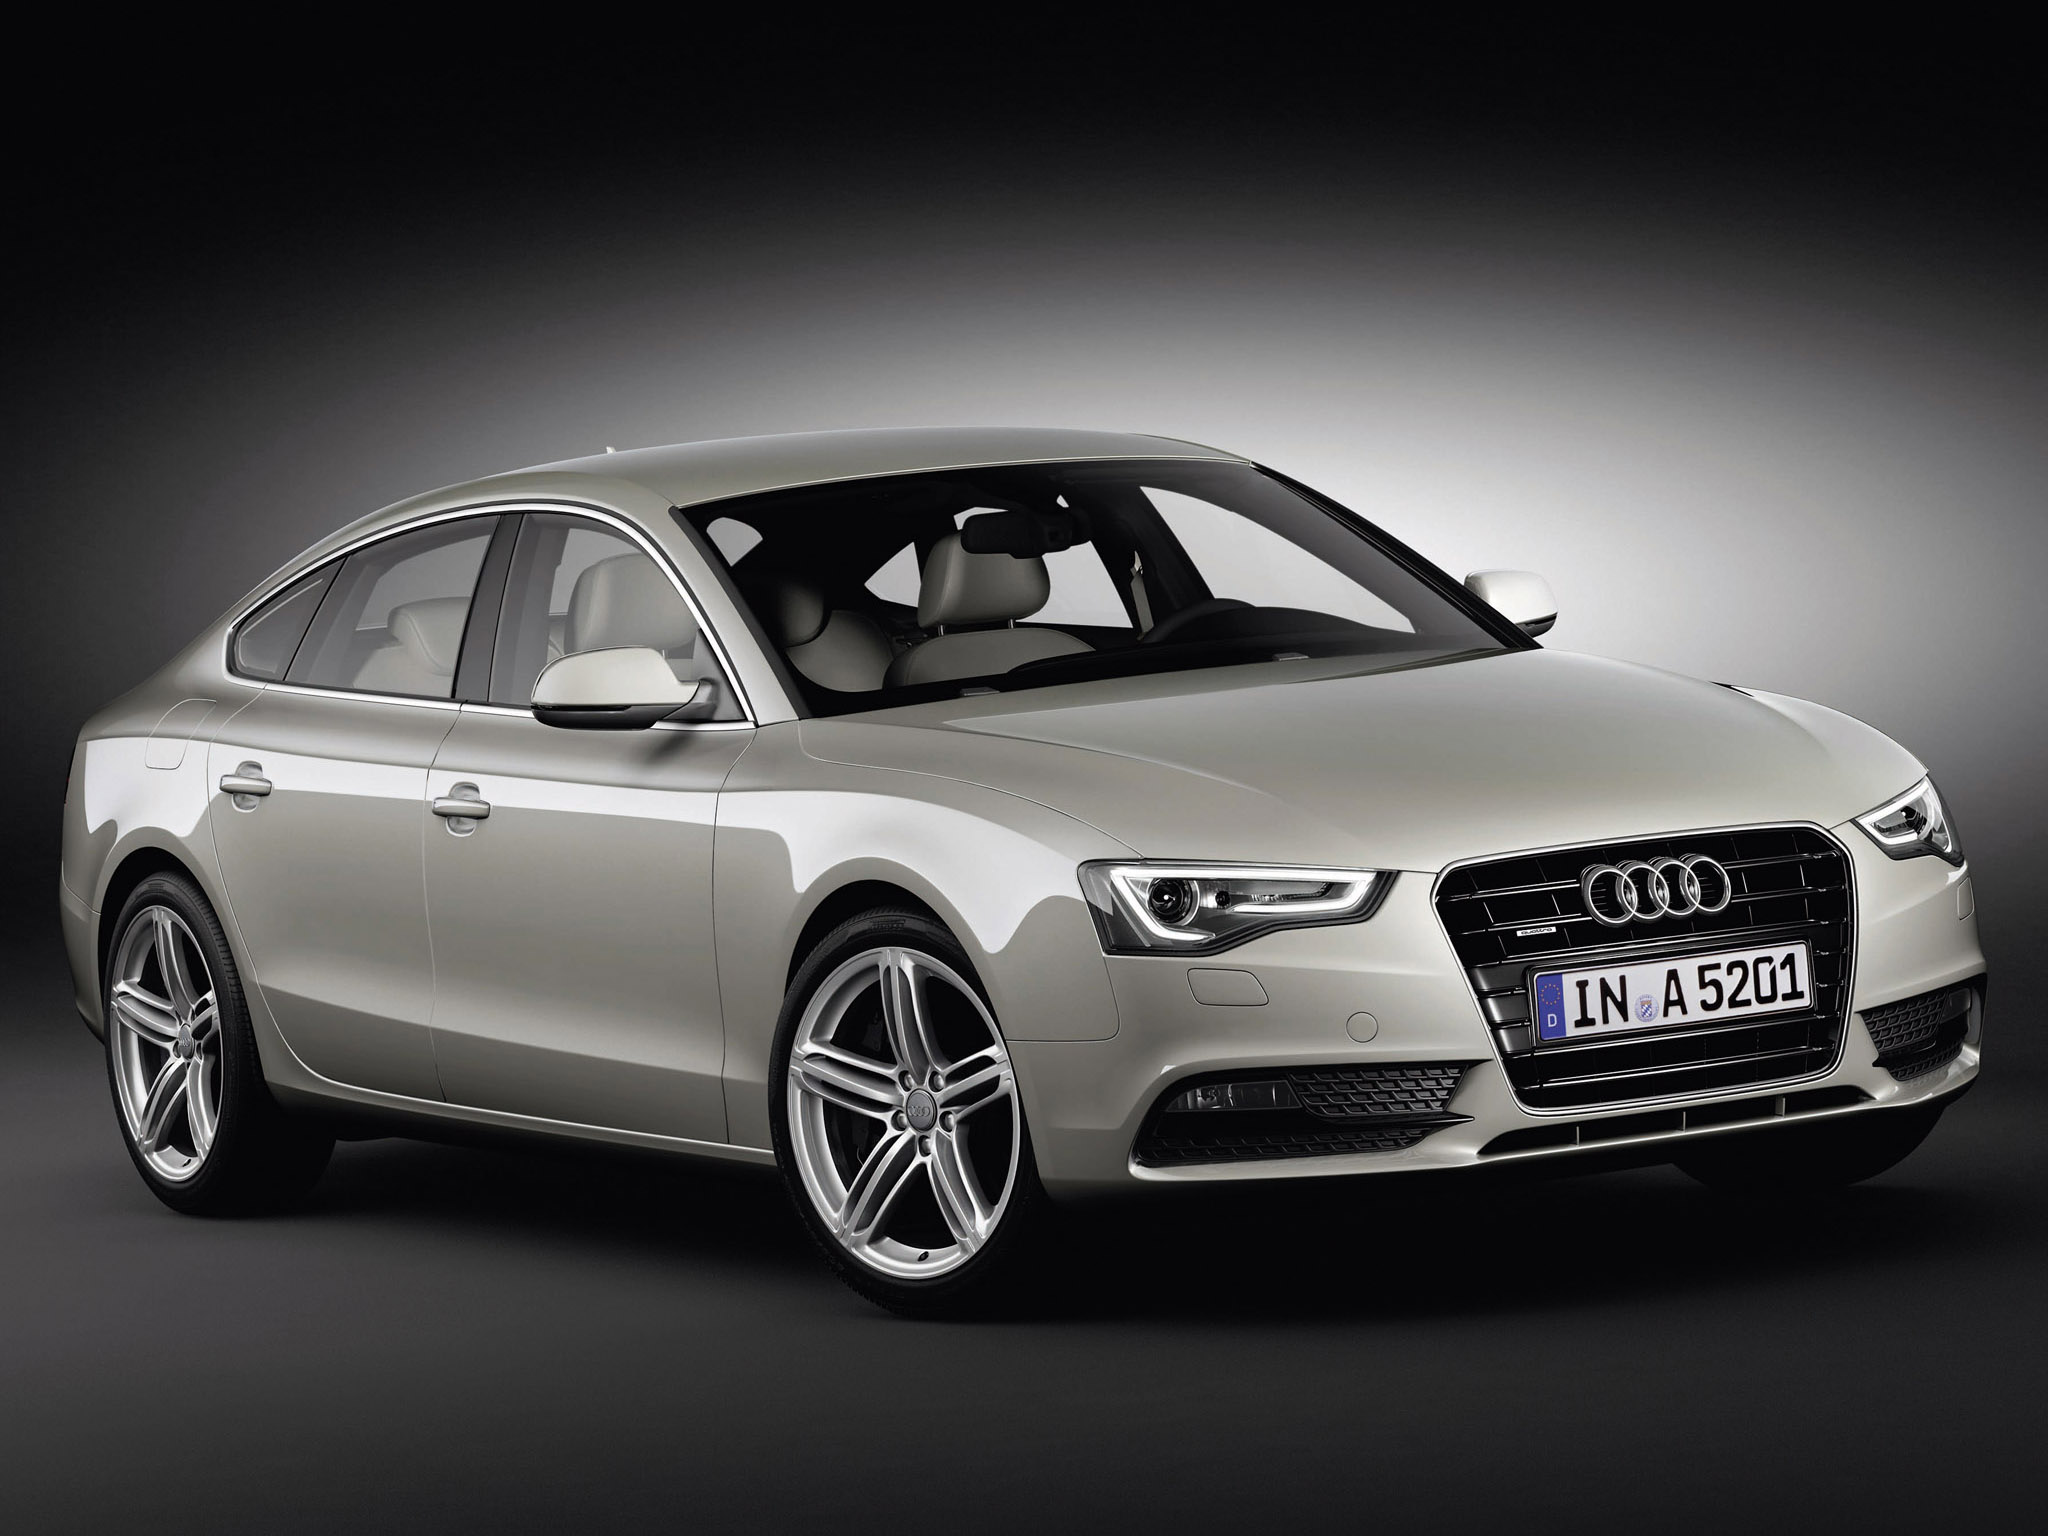 2011 audi a5 information and photos momentcar. Black Bedroom Furniture Sets. Home Design Ideas